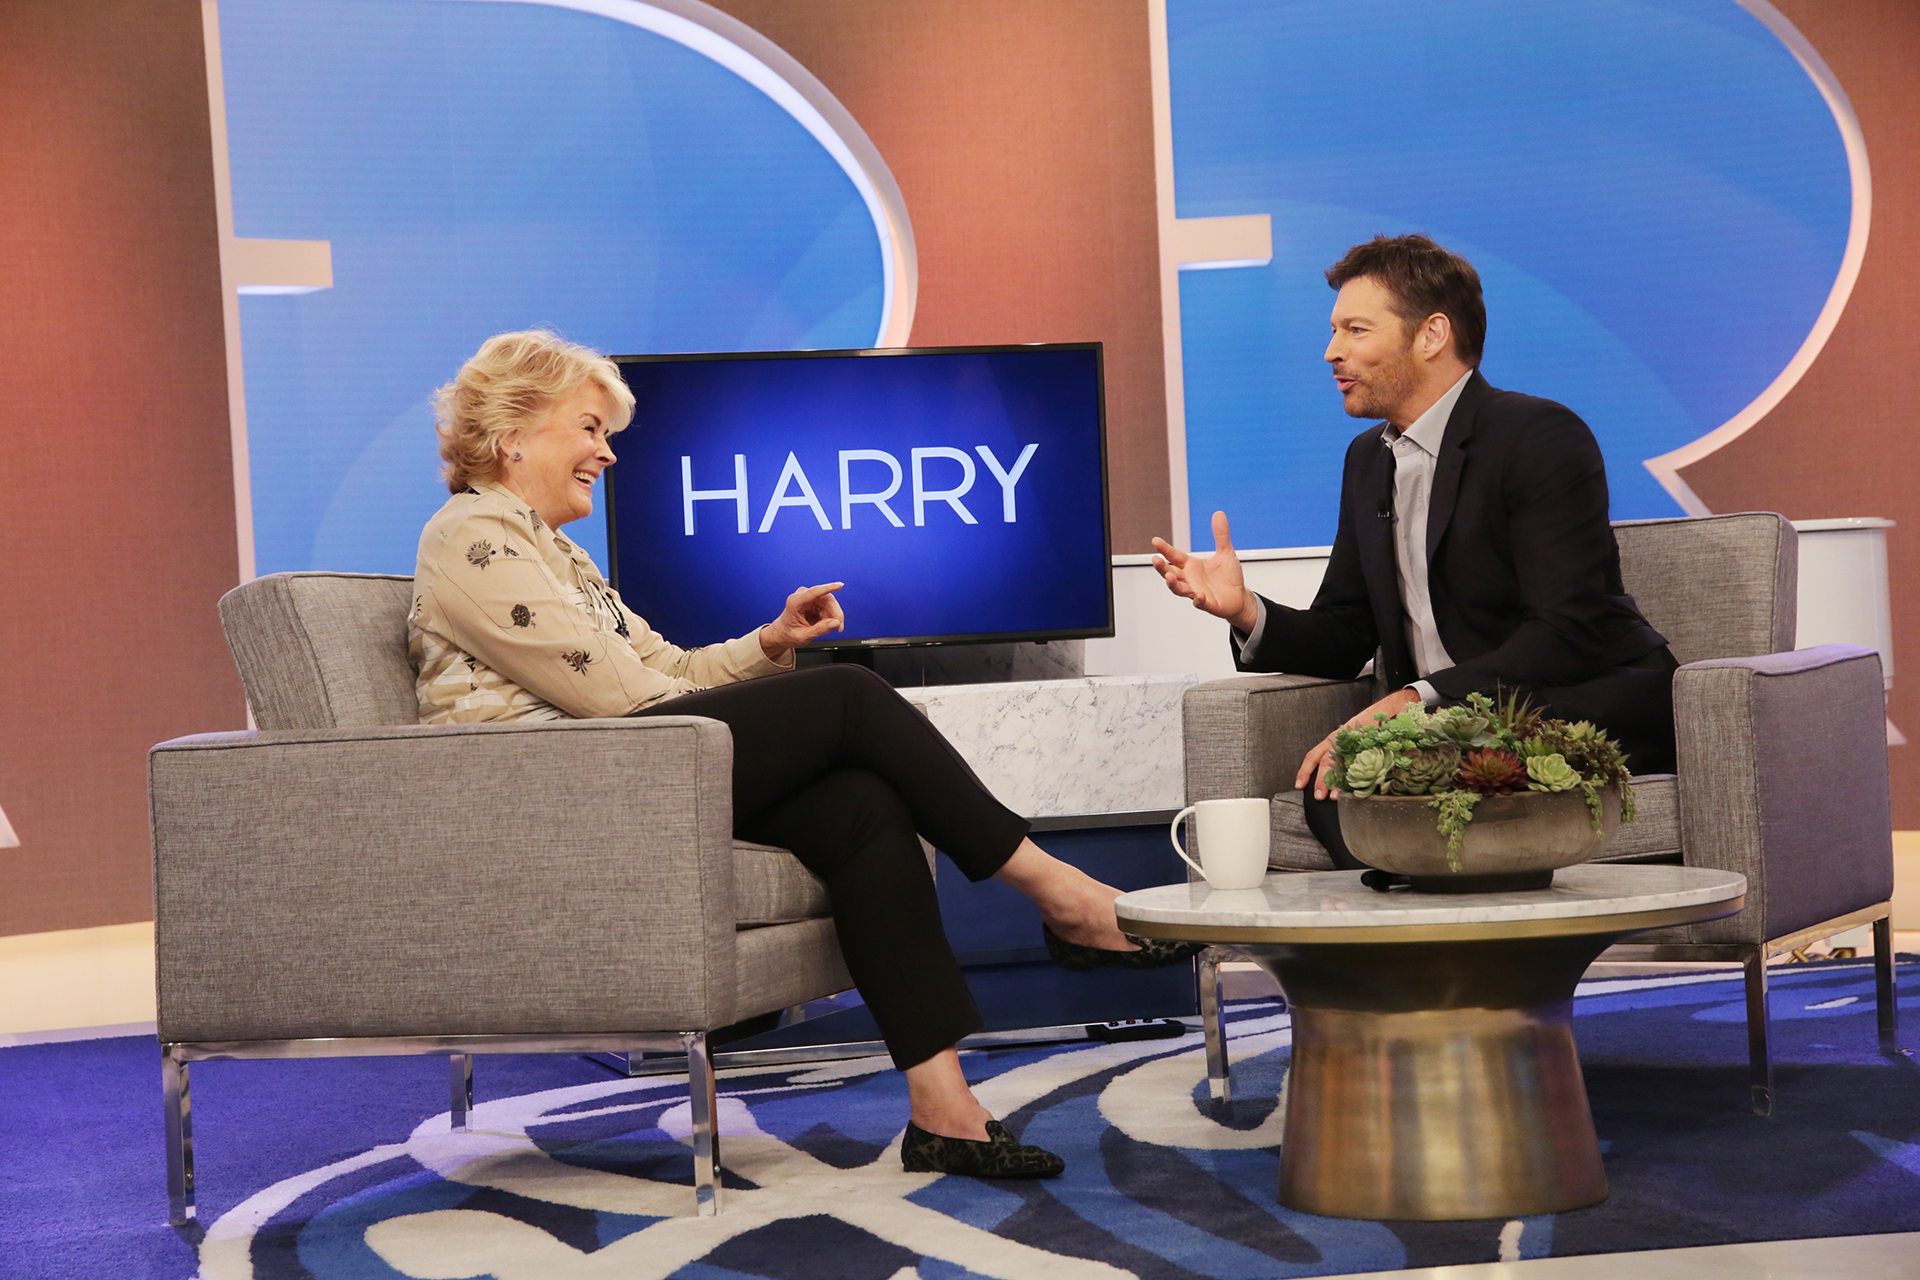 Photo Credit: HARRYtv | © NBC Universal, Inc.